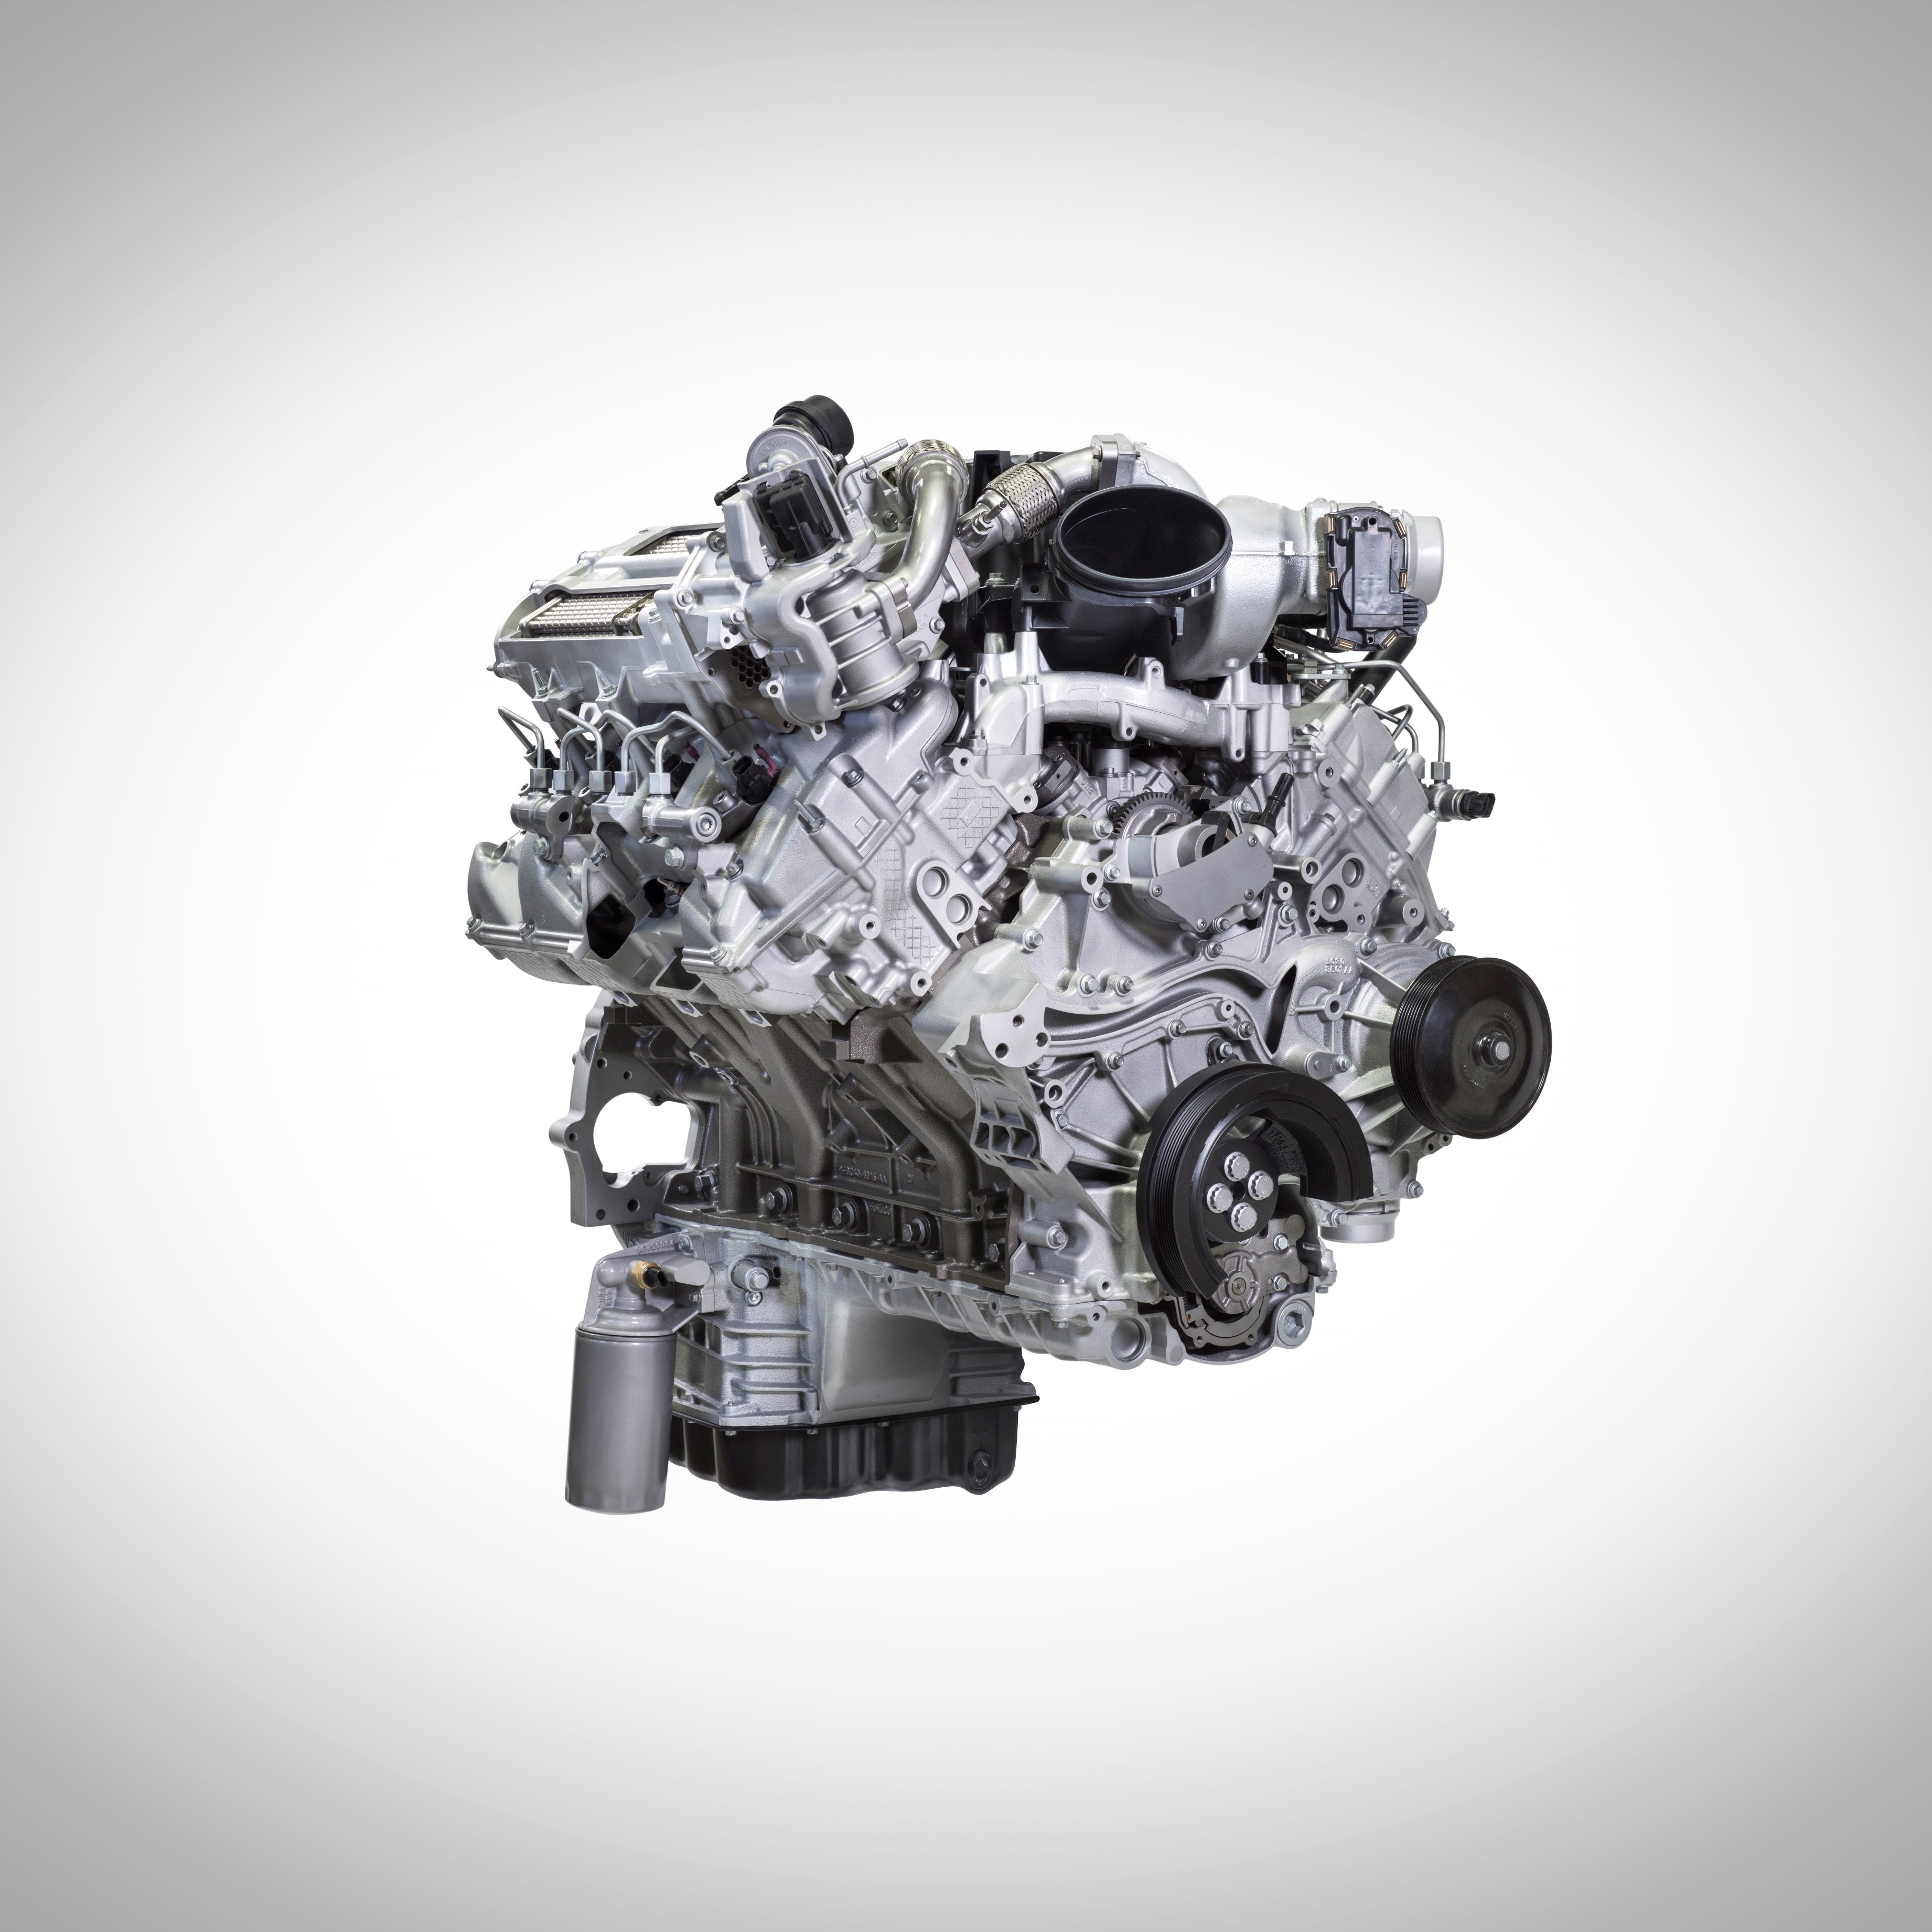 Ford Shows Off Engine, Transmission Advances for Super Duty Trucks